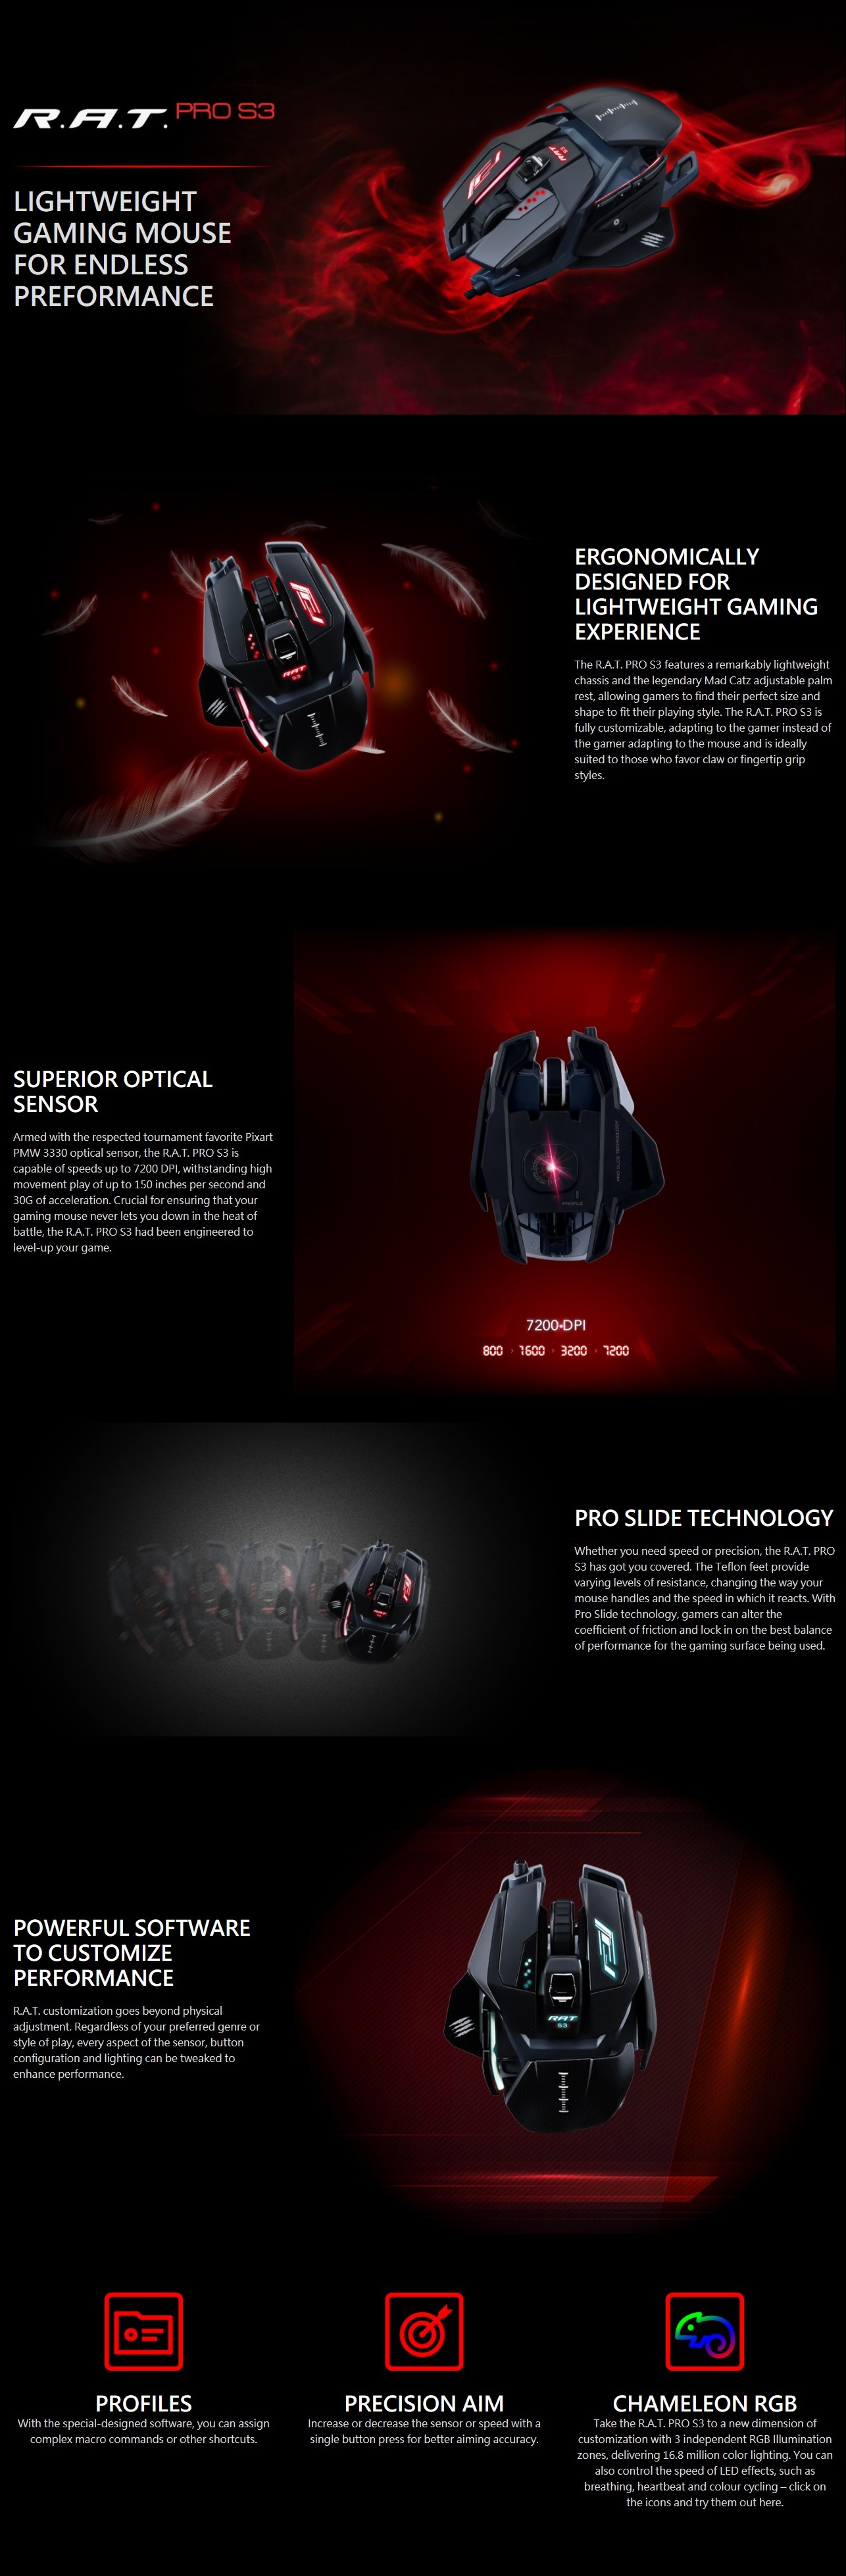 A large marketing image providing additional information about the product Mad Catz R.A.T. PRO S3 Gaming Mouse Black - Additional alt info not provided